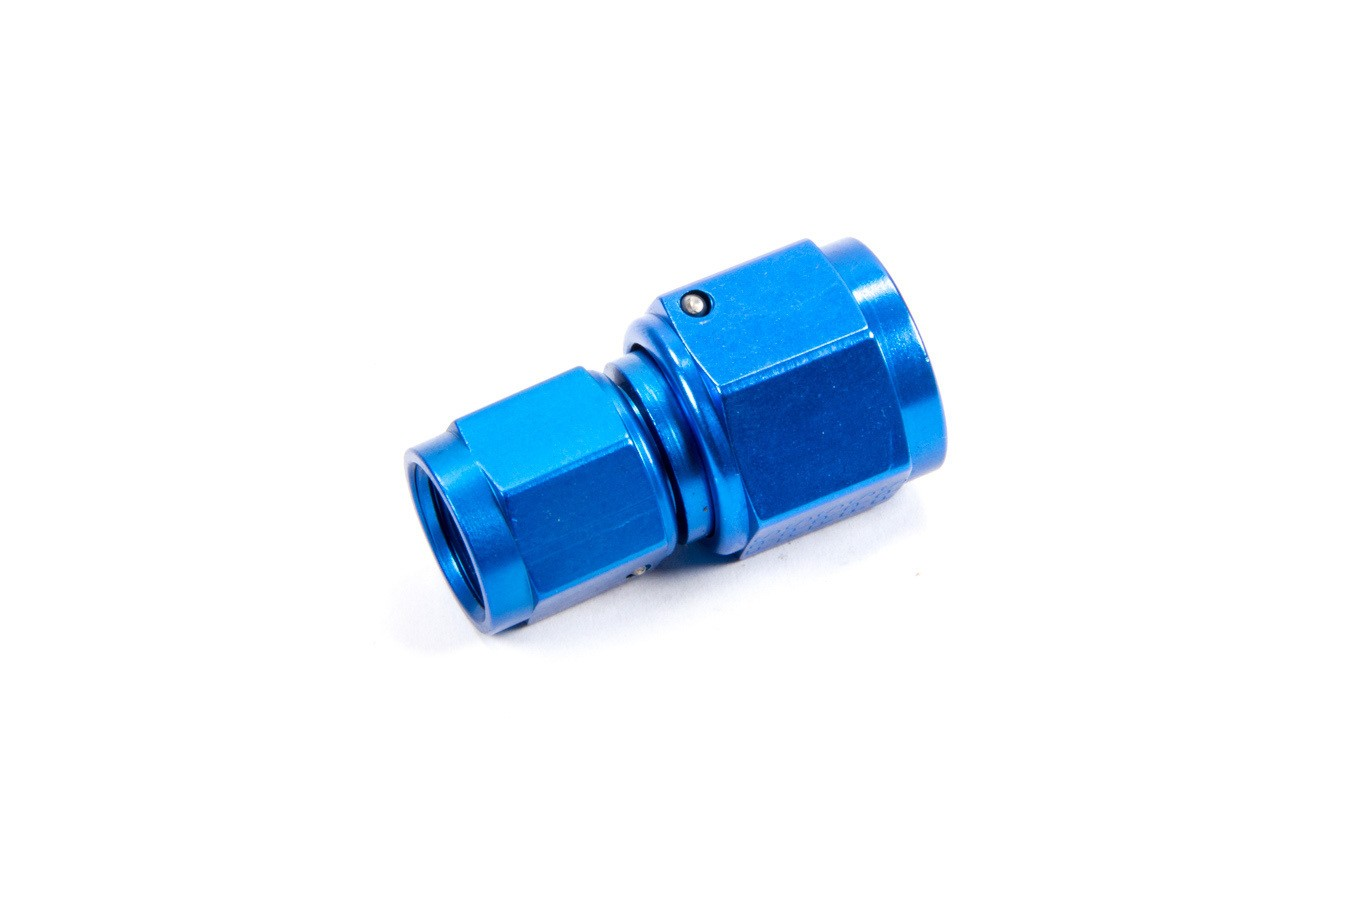 Fragola 496107 Fitting, Adapter, Straight, 6 AN Female Swivel to 8 AN Female Swivel, Aluminum, Blue Anodized, Each